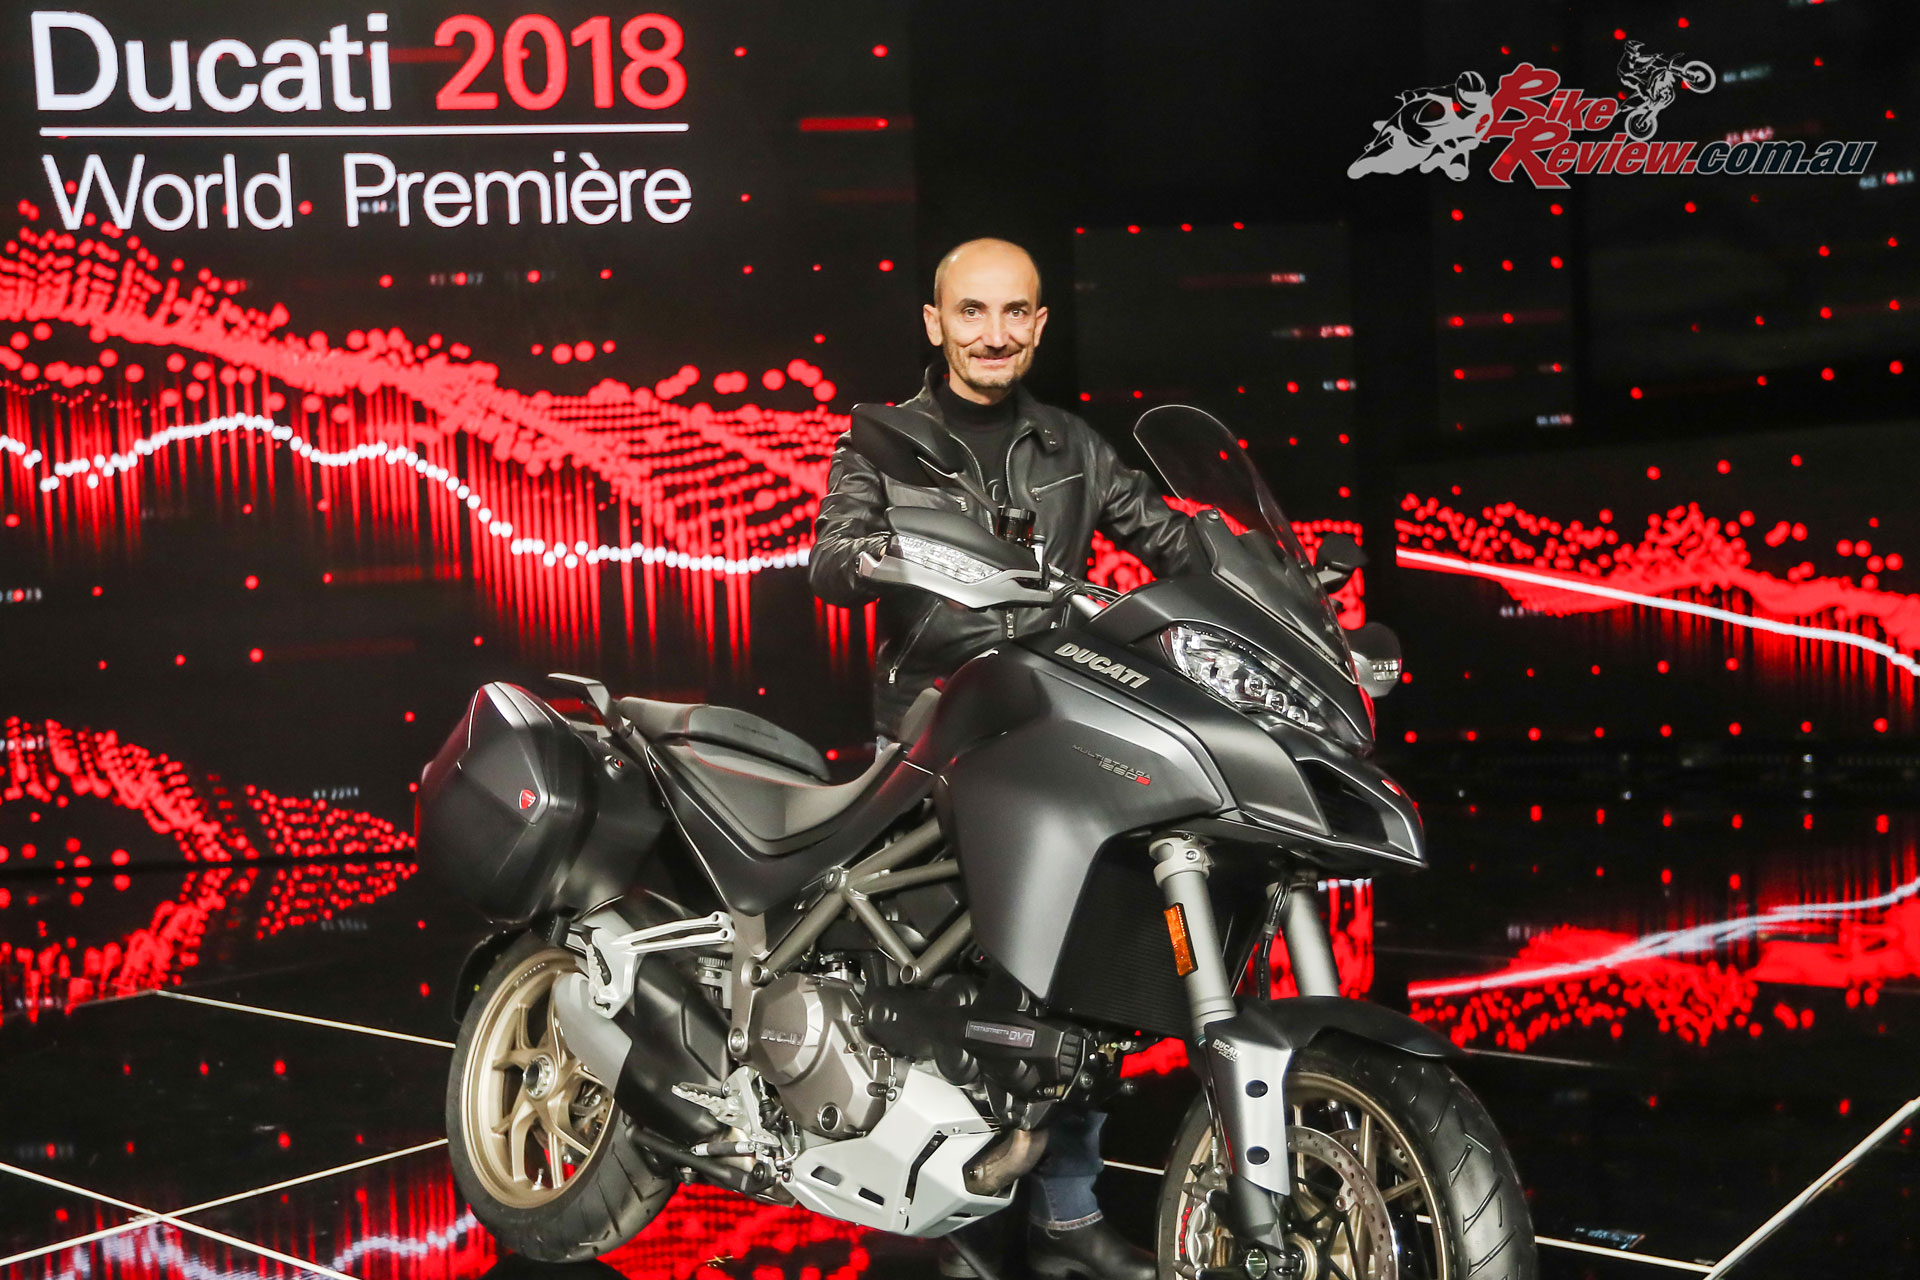 The updated for 2018 Multistrada 1260 was also unveiled